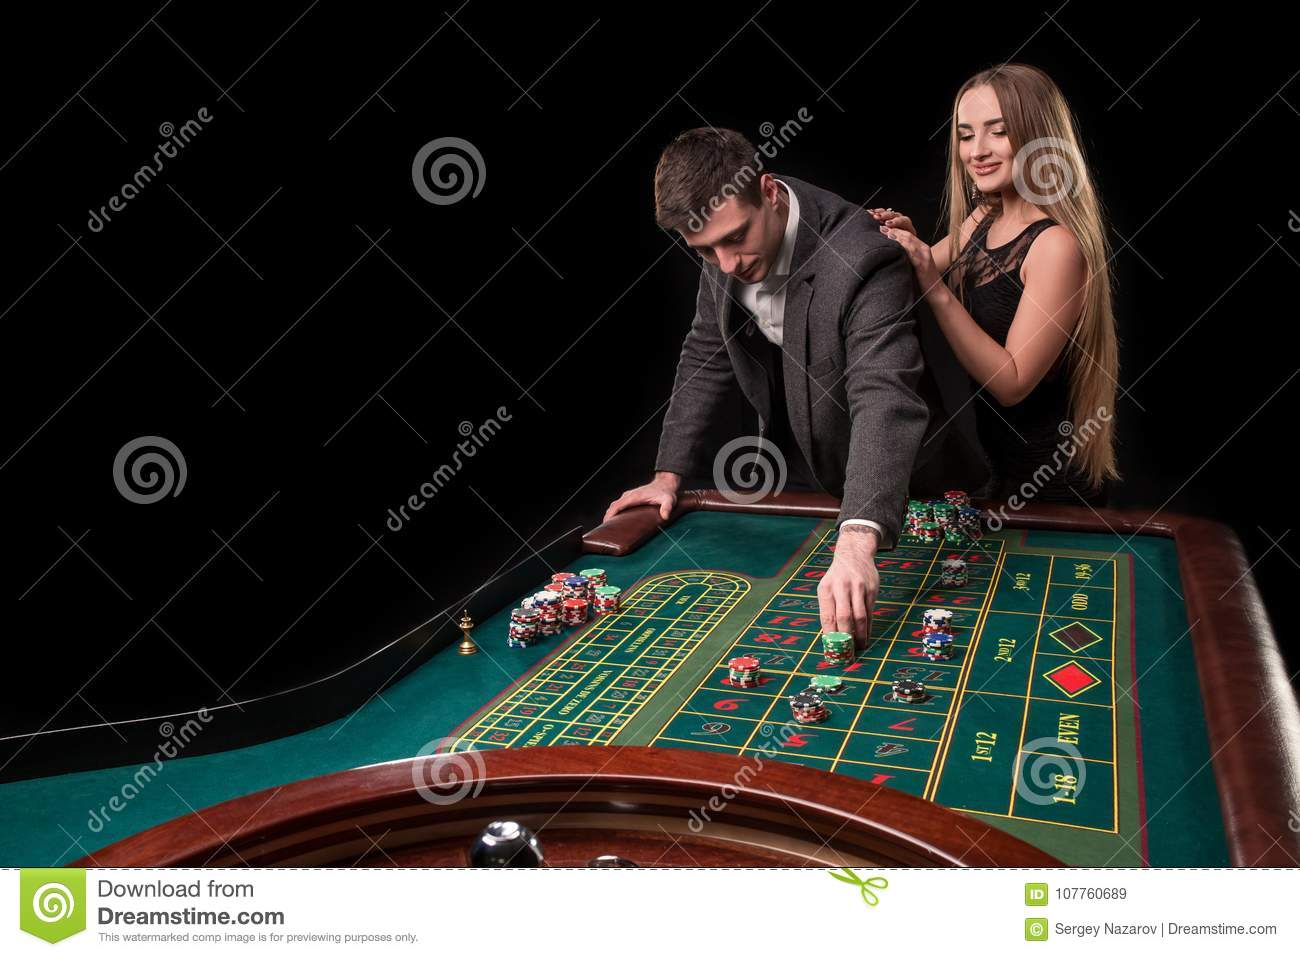 Roulette woman bet it all on black bitcoins exchange rate aud cny